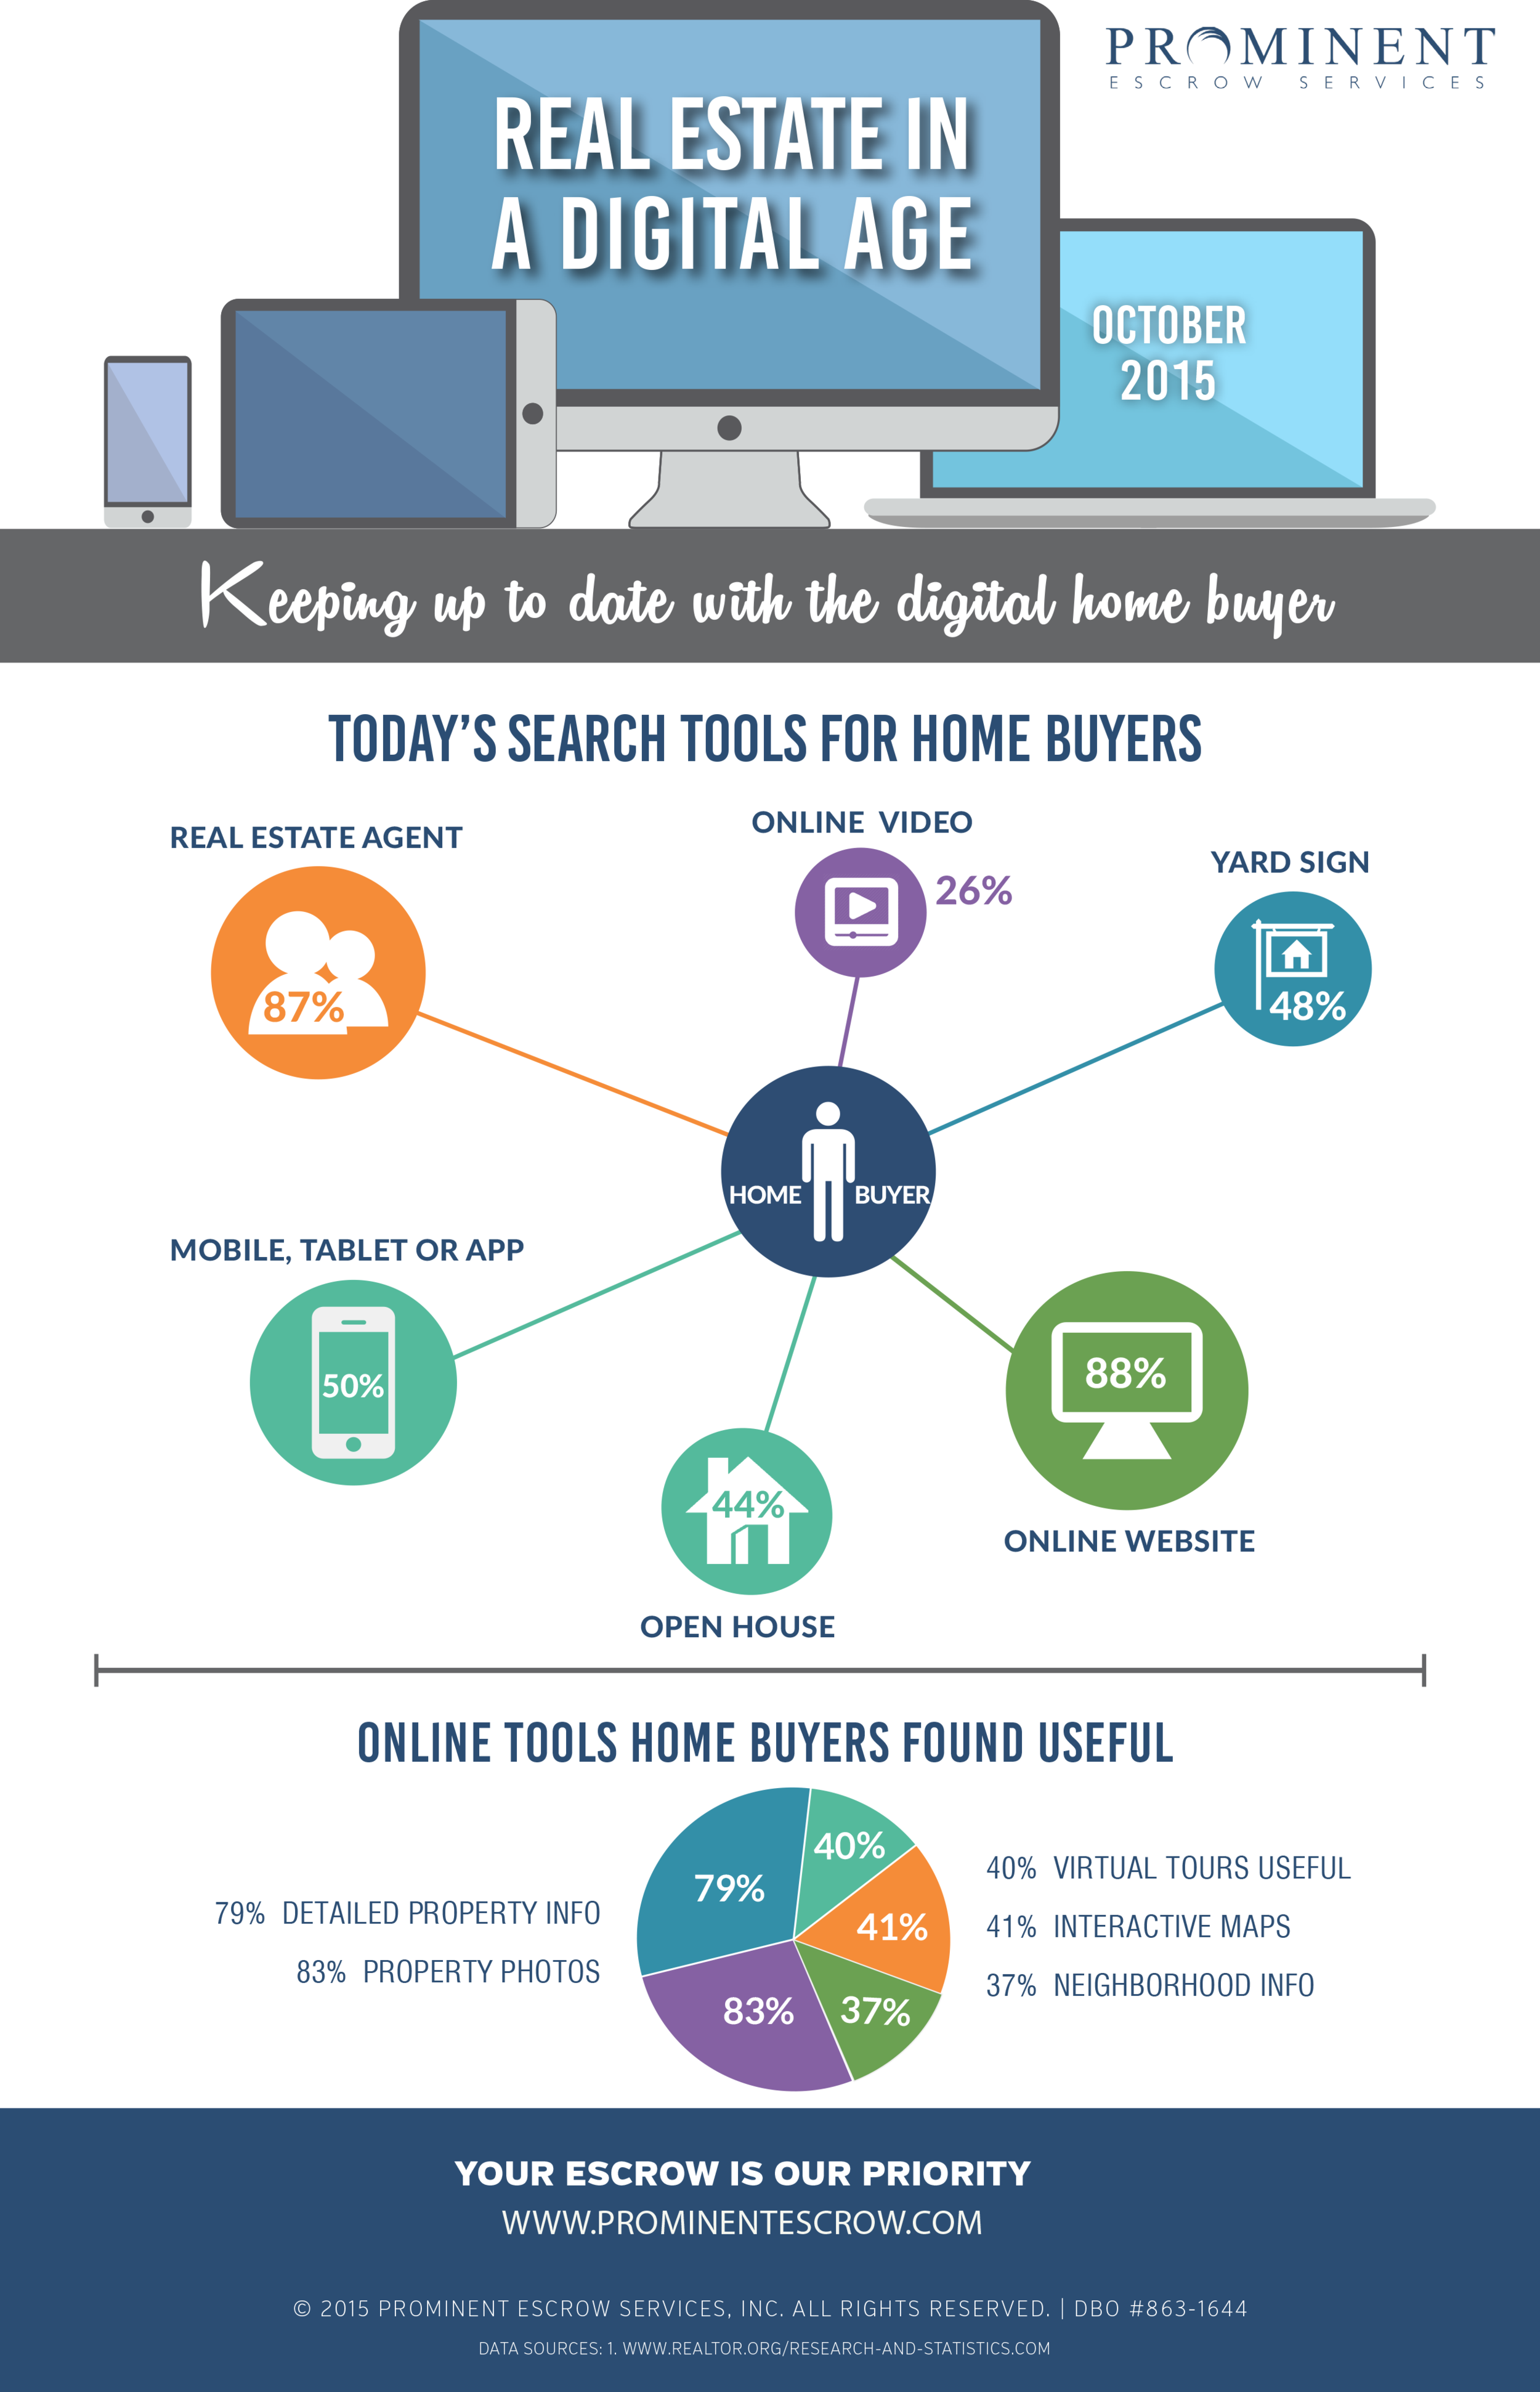 9-1-2015 Real-Estate-in-a-digital-age-Oct-2015.png